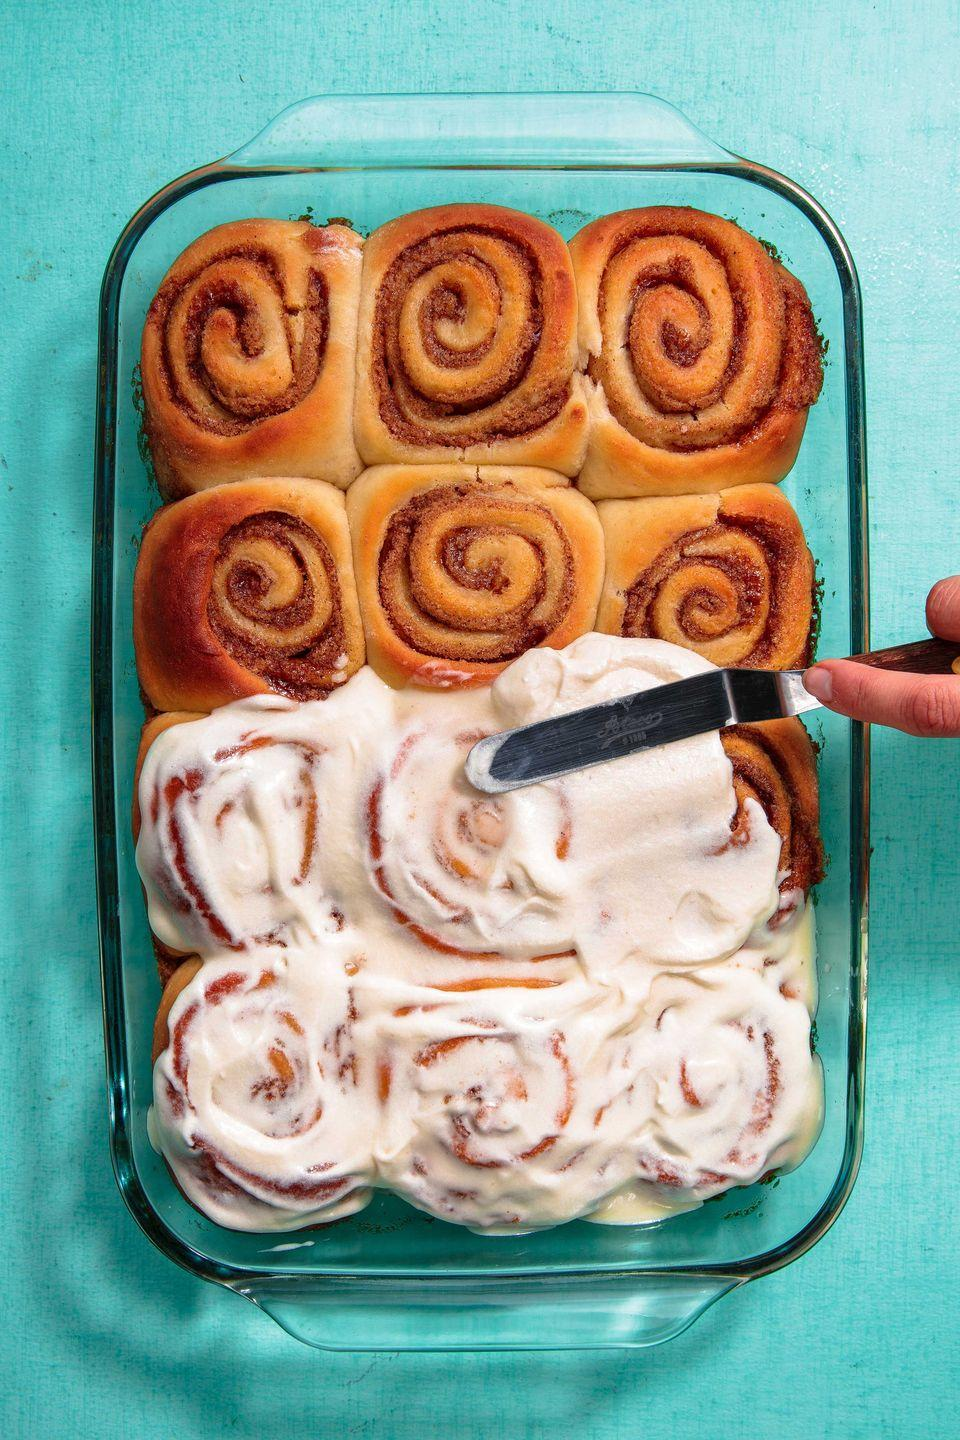 "<p>Opening all of your presents from Santa will probably make you hungry, and this Cinnamon Roll Bake is one of the best ways to fuel up for the day's festivities.</p><p><a class=""link rapid-noclick-resp"" href=""https://www.delish.com/holiday-recipes/g1321/holiday-breakfast-casserole-recipes/"" rel=""nofollow noopener"" target=""_blank"" data-ylk=""slk:GET CHRISTMAS BREAKFAST RECIPES"">GET CHRISTMAS BREAKFAST RECIPES</a></p>"